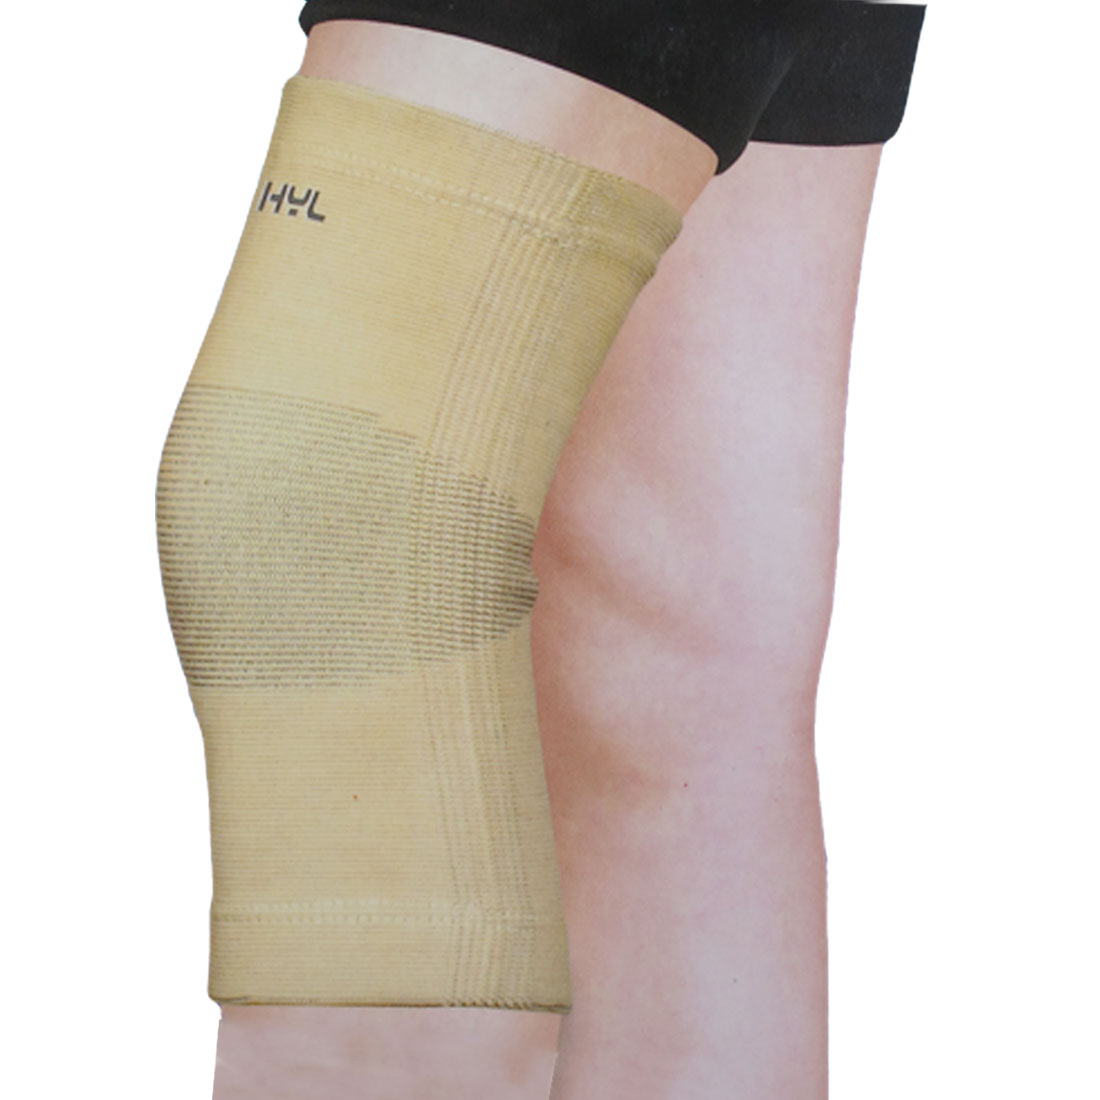 "13.4""-15.7"" Sports Knee Support Elastic Brace Pad Wrap Protector Beige Gray"